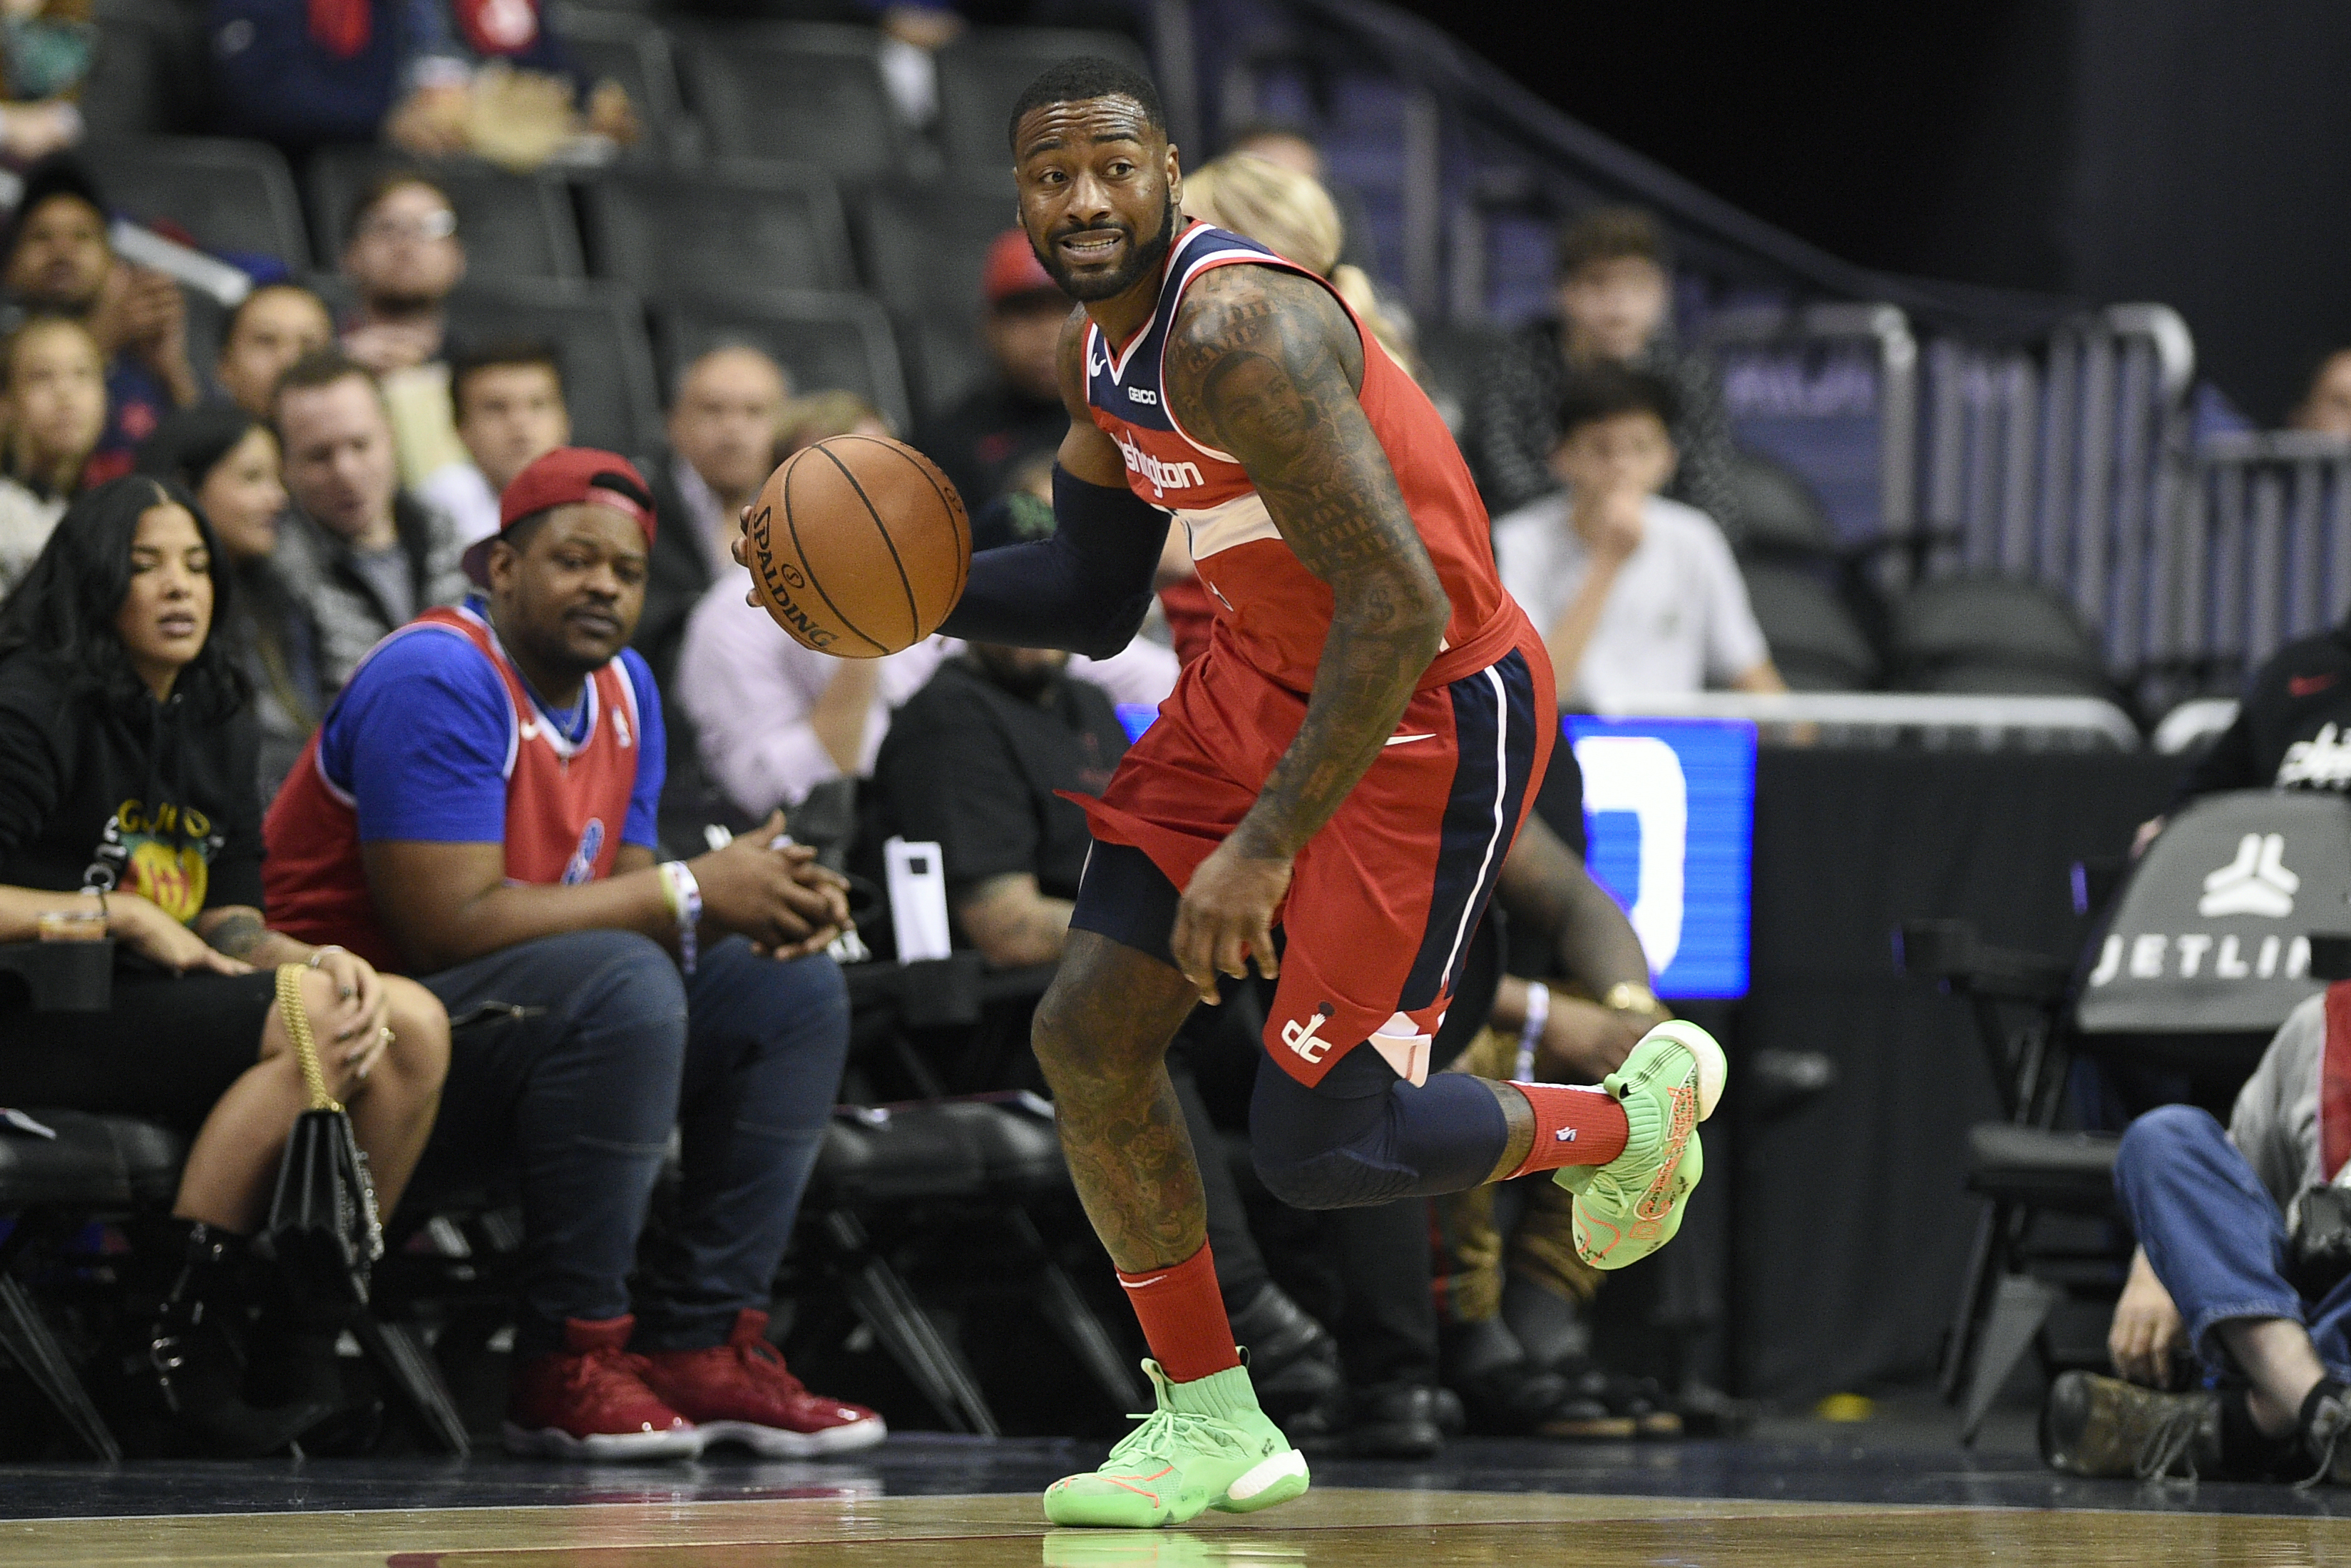 Wizards' John Wall says he's '110%' and 'itching' to return